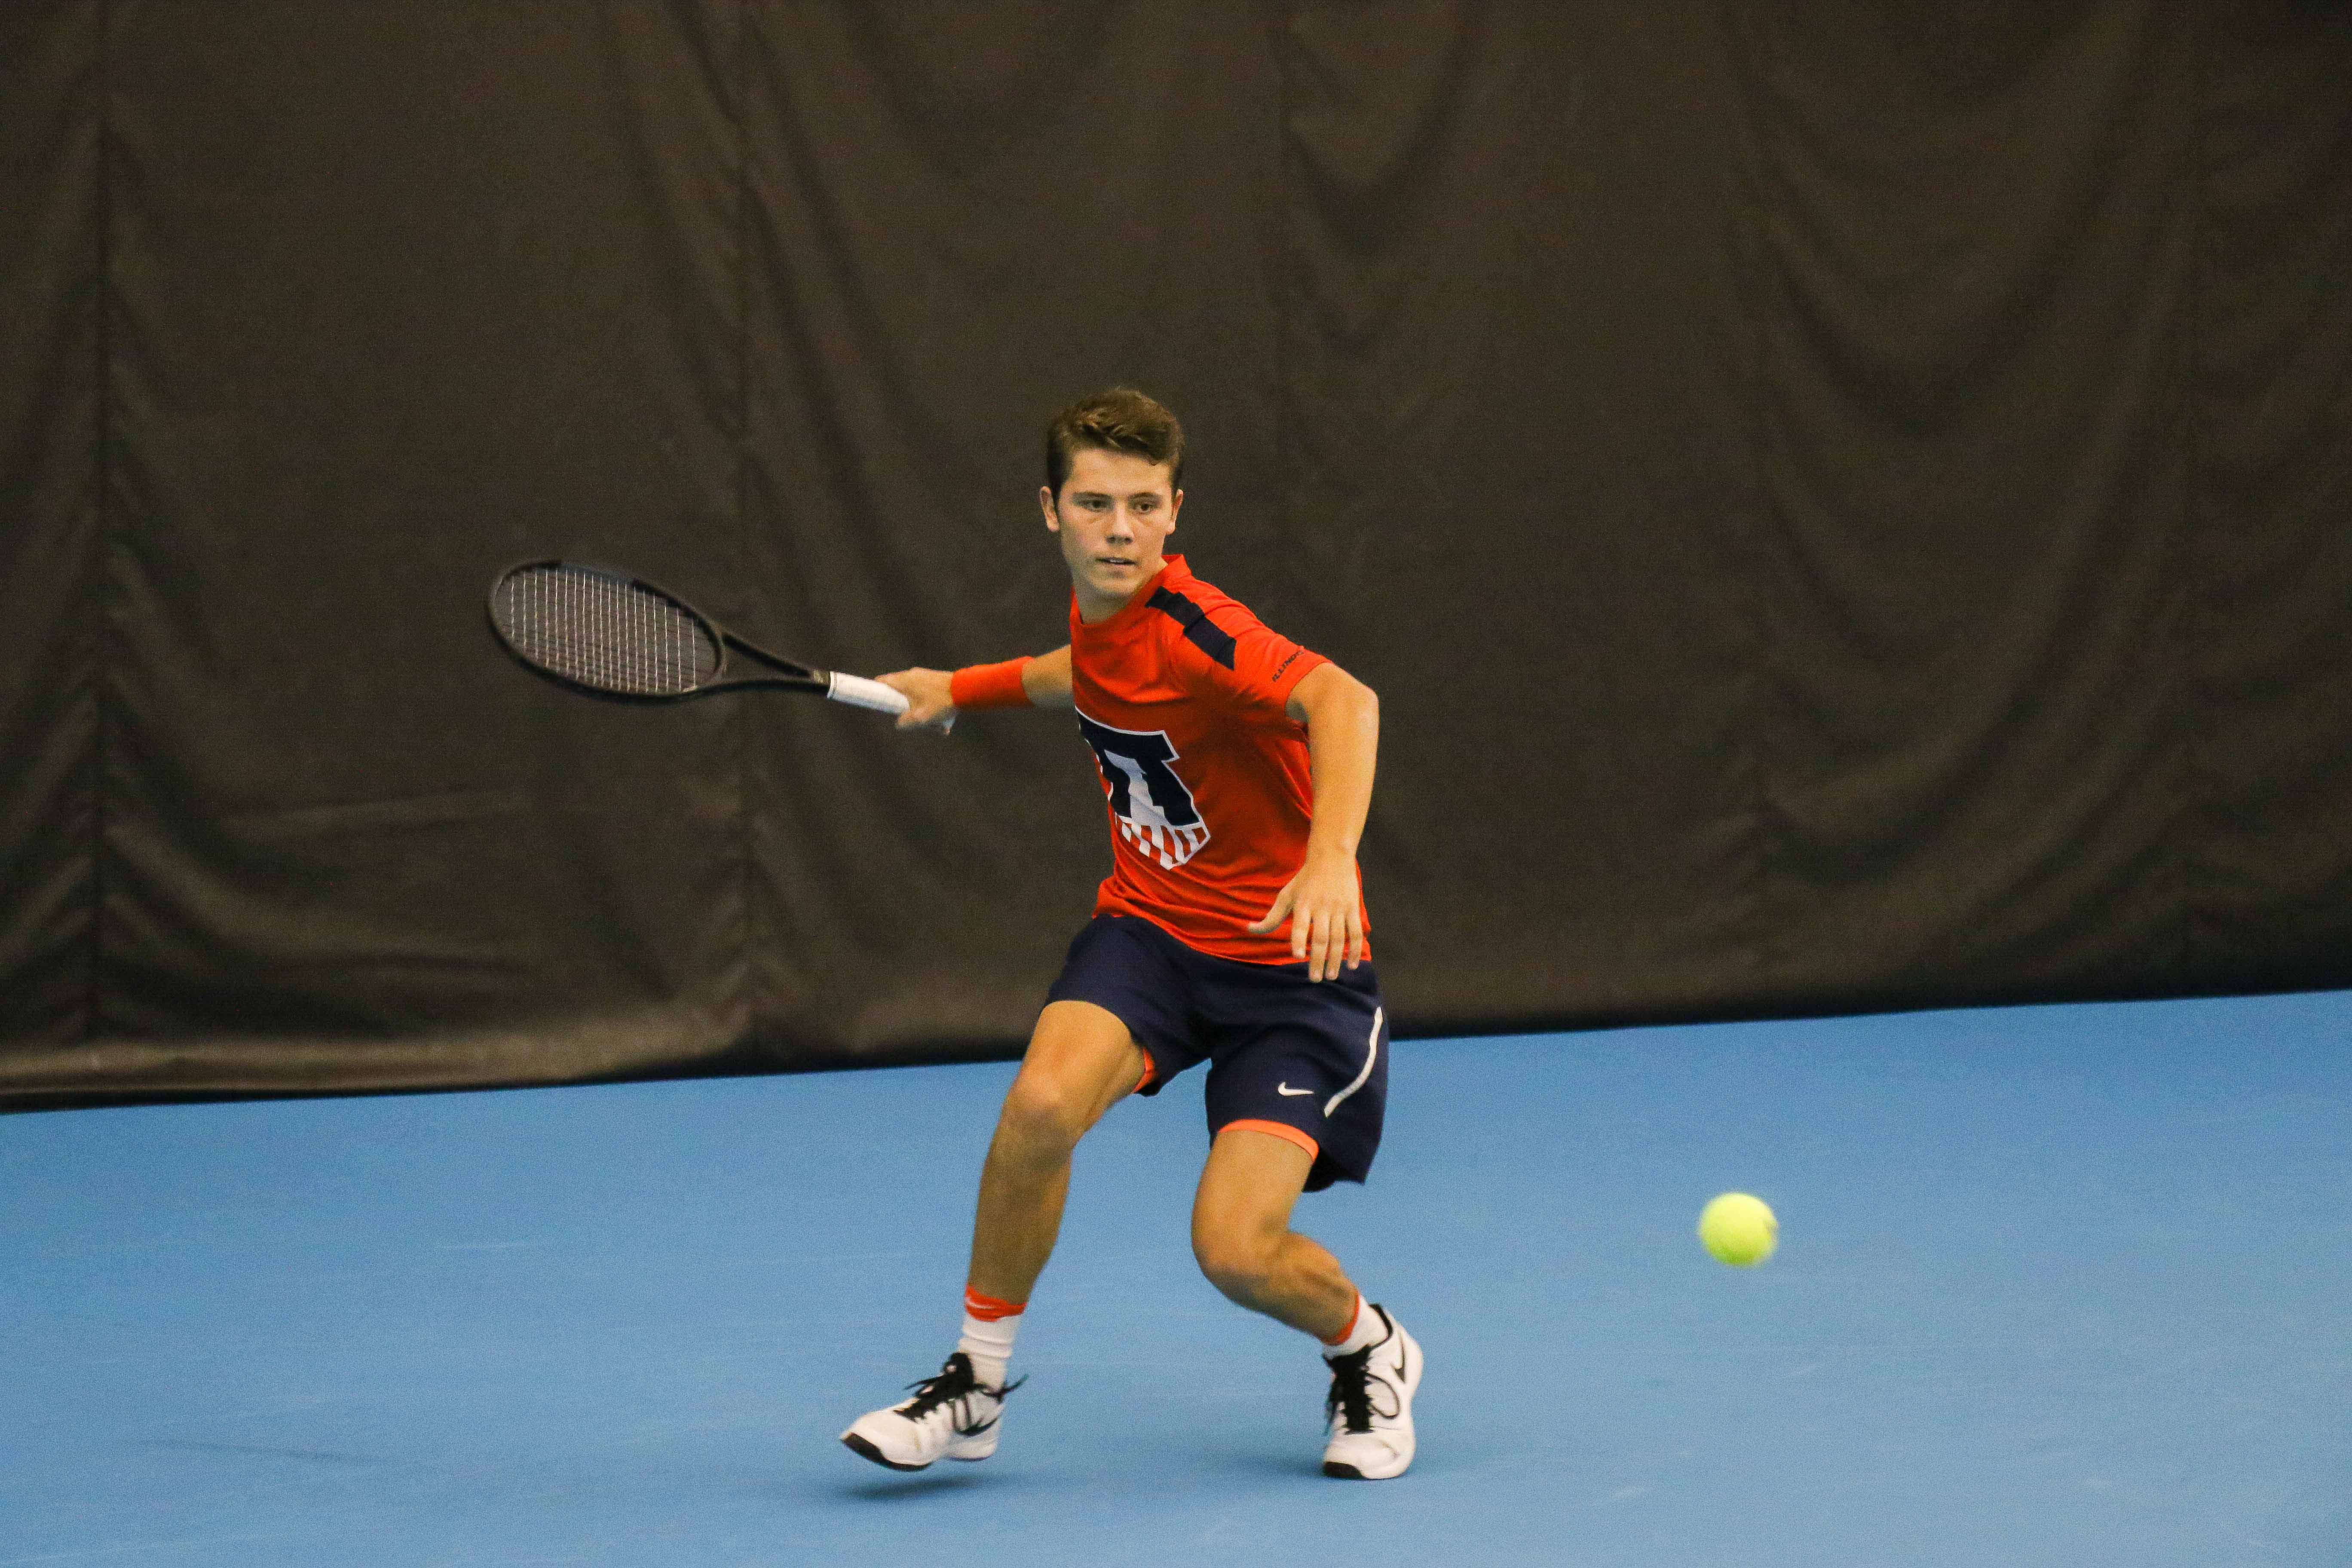 Illinois' Aleks Kovacevic prepares to strike back the ball in the match  against University of Kentucky on Friday, Feb. 24 at the Atkins Tennis Center in Urbana. The team is starting to improve now, being 2-1 in the Big Ten and 9-5 overall this season.